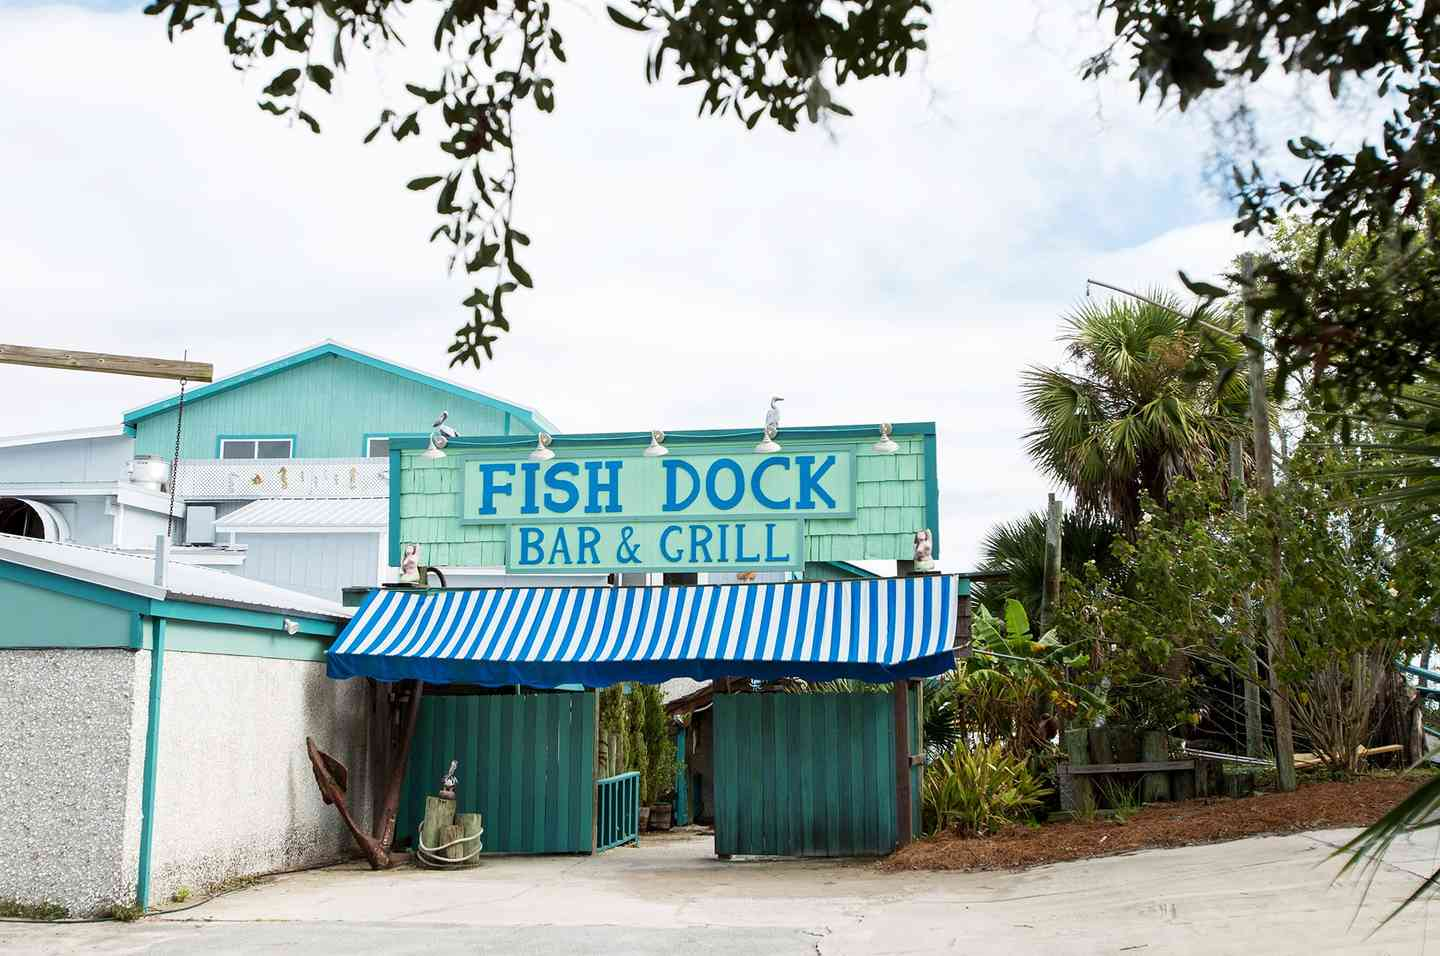 The Fish Dock Store Front